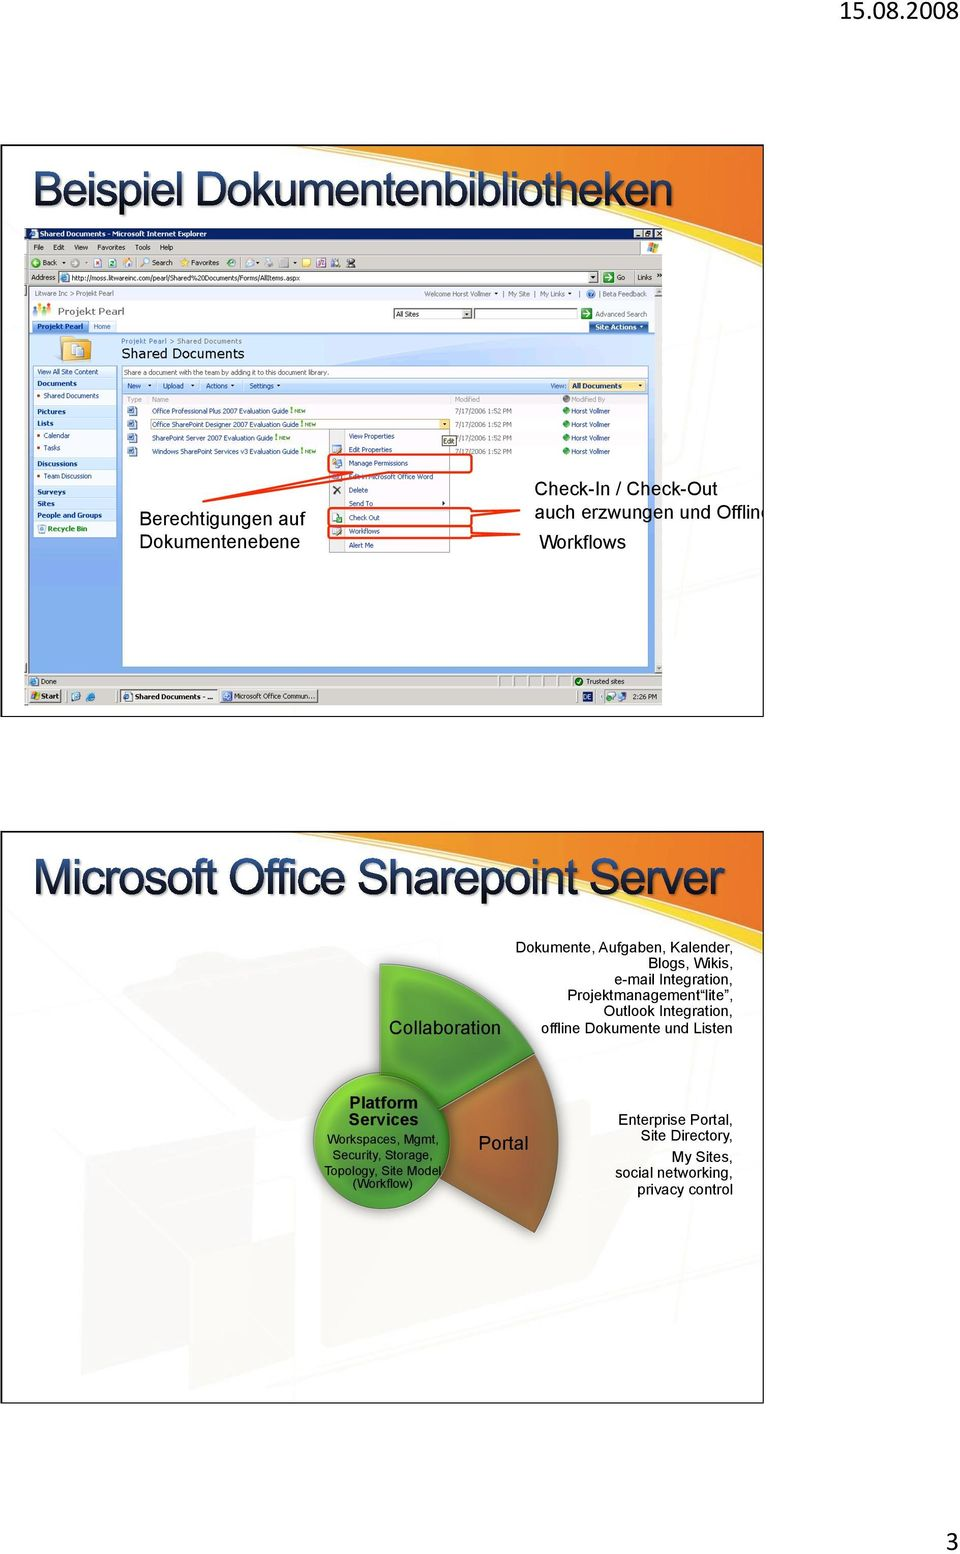 Outlook Integration, offline Dokumente und Listen Platform Services Workspaces, Mgmt, Security, Storage,